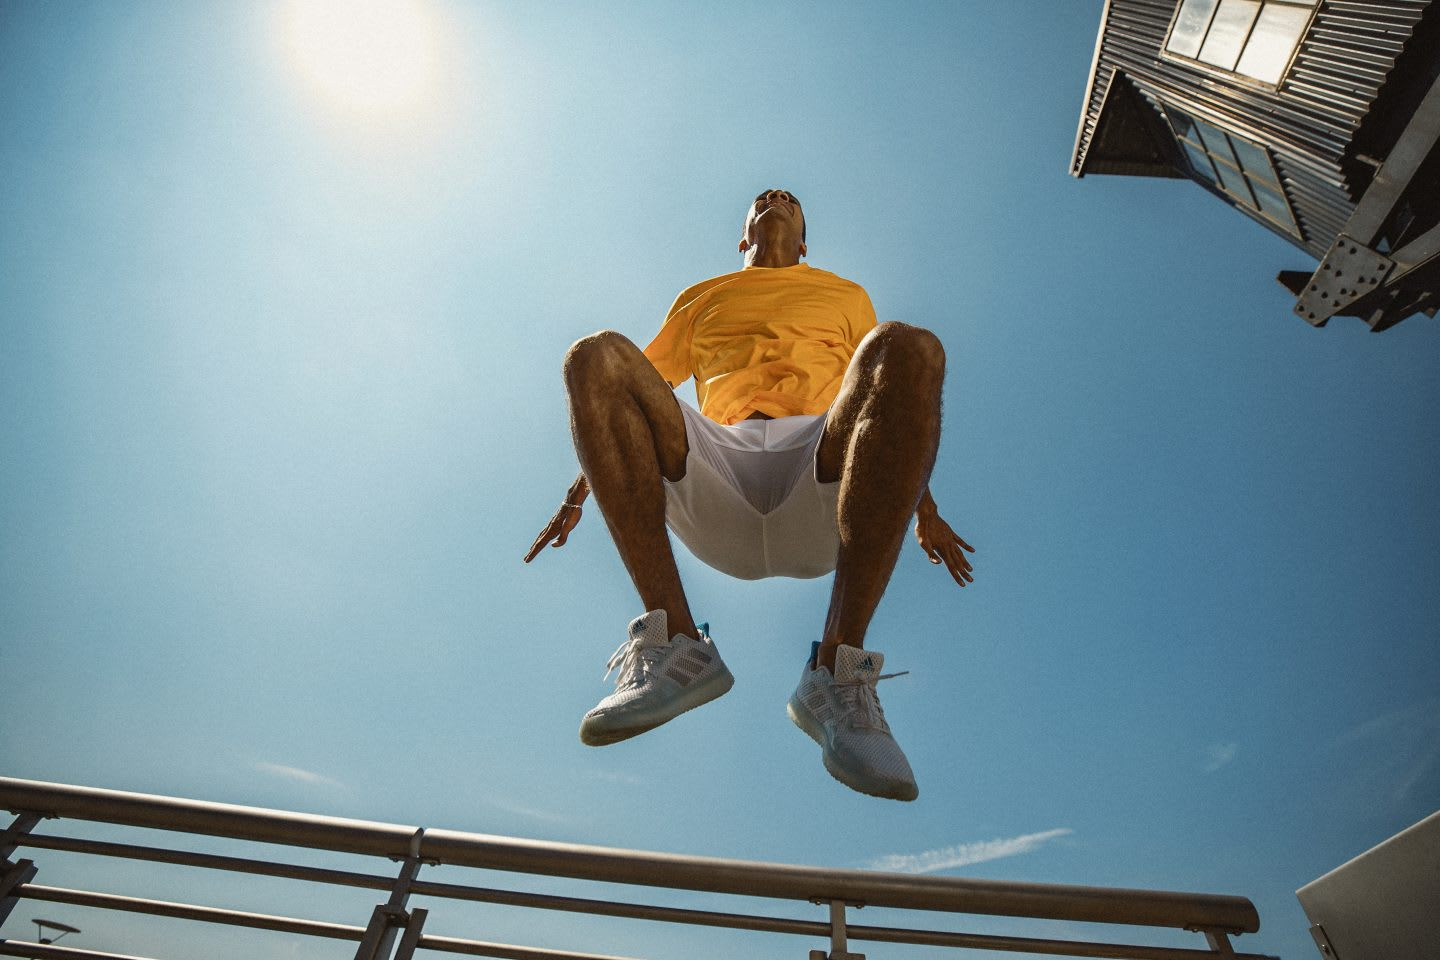 Man in yellow shirt jumping during sport, exercise, fitness, adidas, GamePlan A